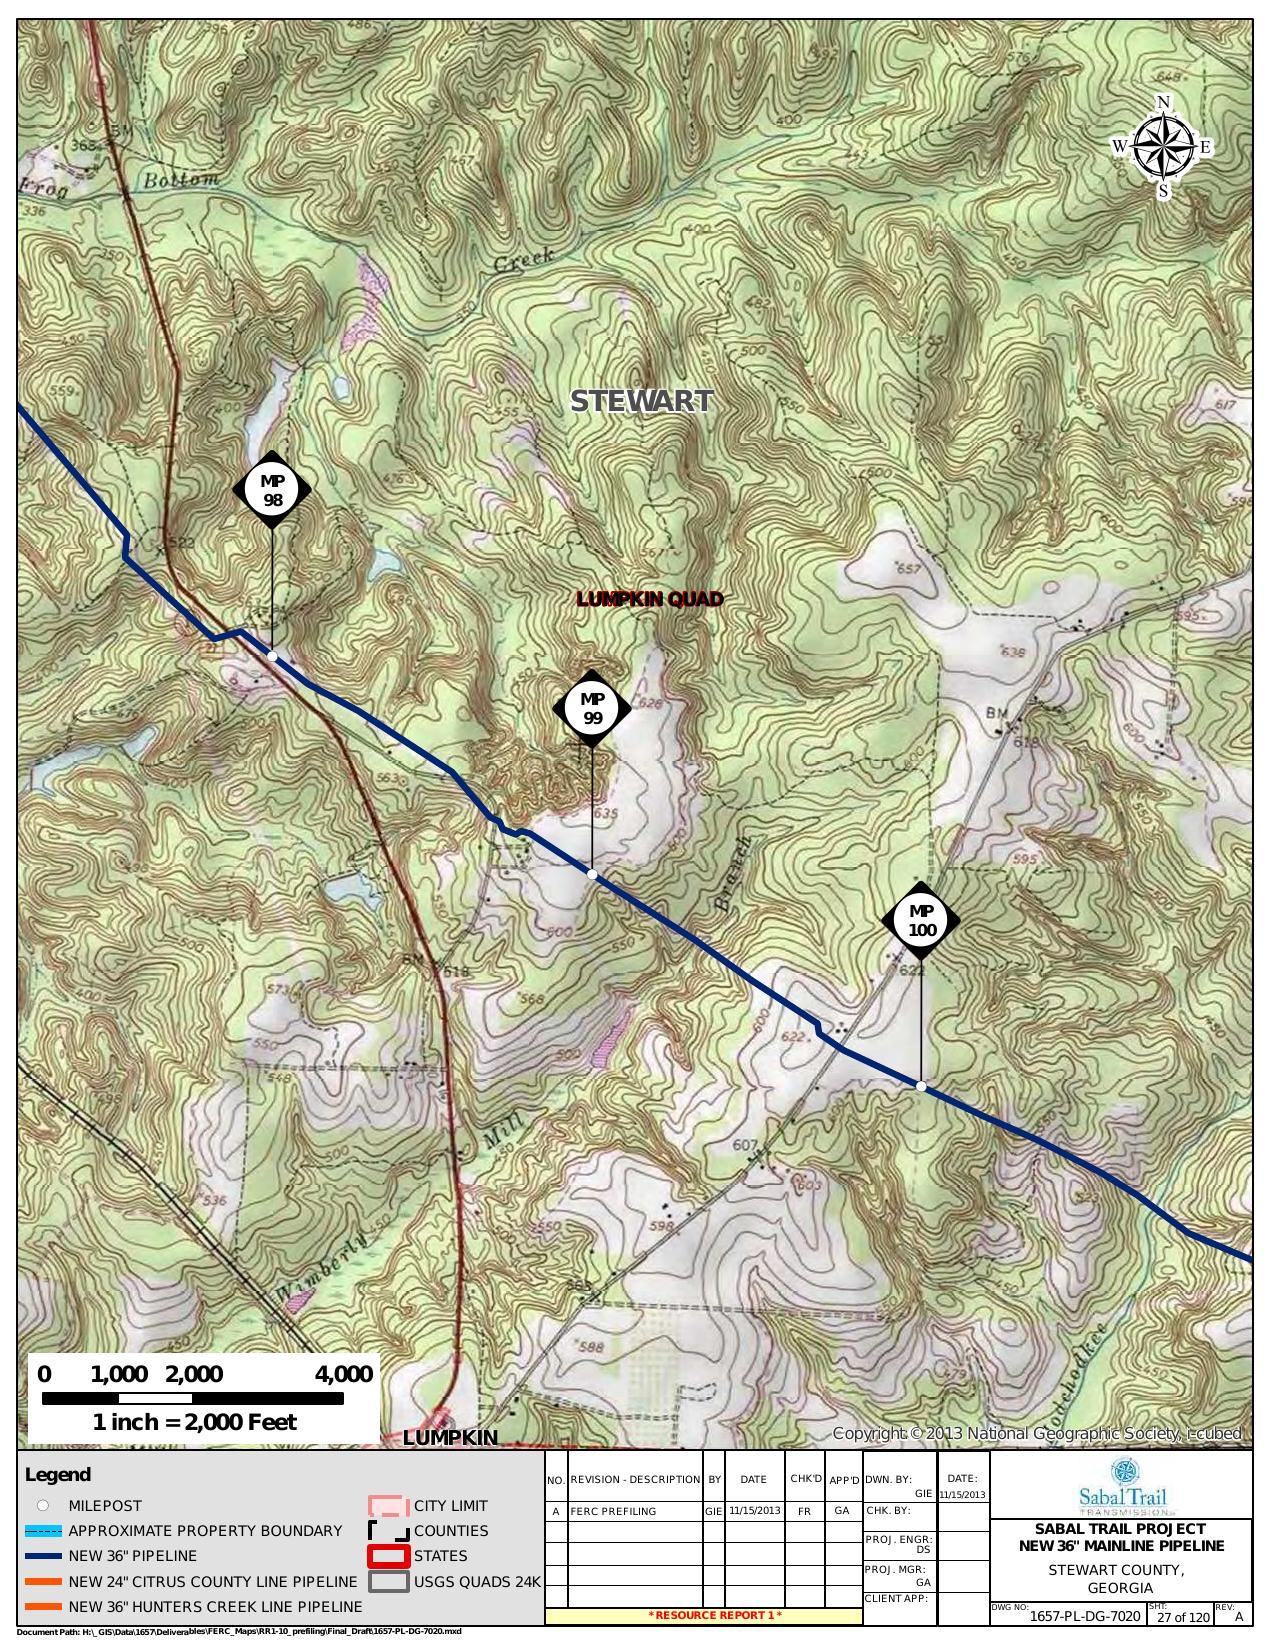 Mill Branch, Stewart County, Georgia, in General Project Description, by SpectraBusters, for FERC Docket No. PF14-1-000, 15 November 2013, converted by SpectraBusters